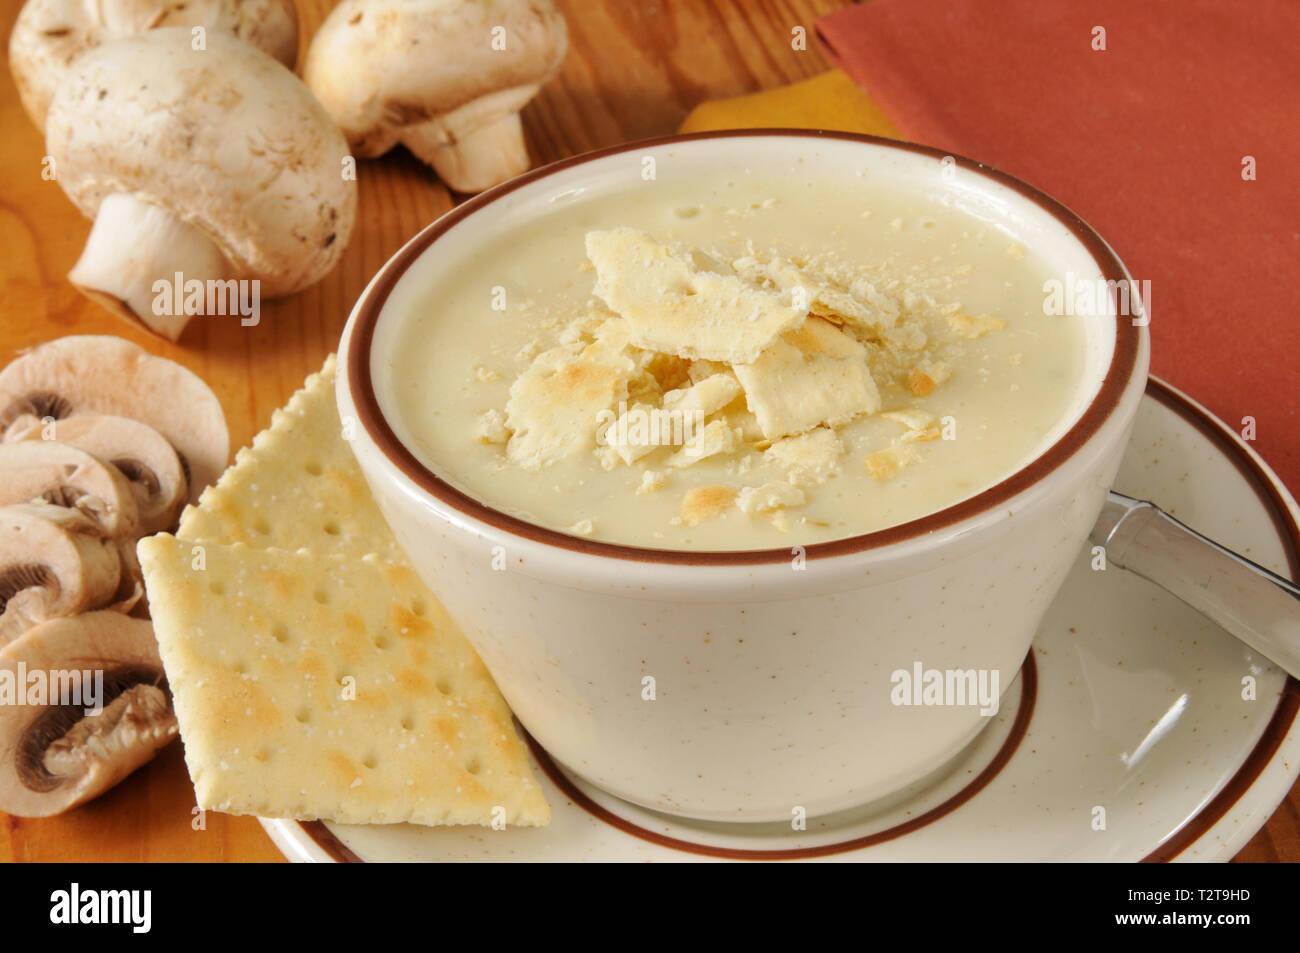 A cup of cream of mushroom soup with saltilne crackers - Stock Image